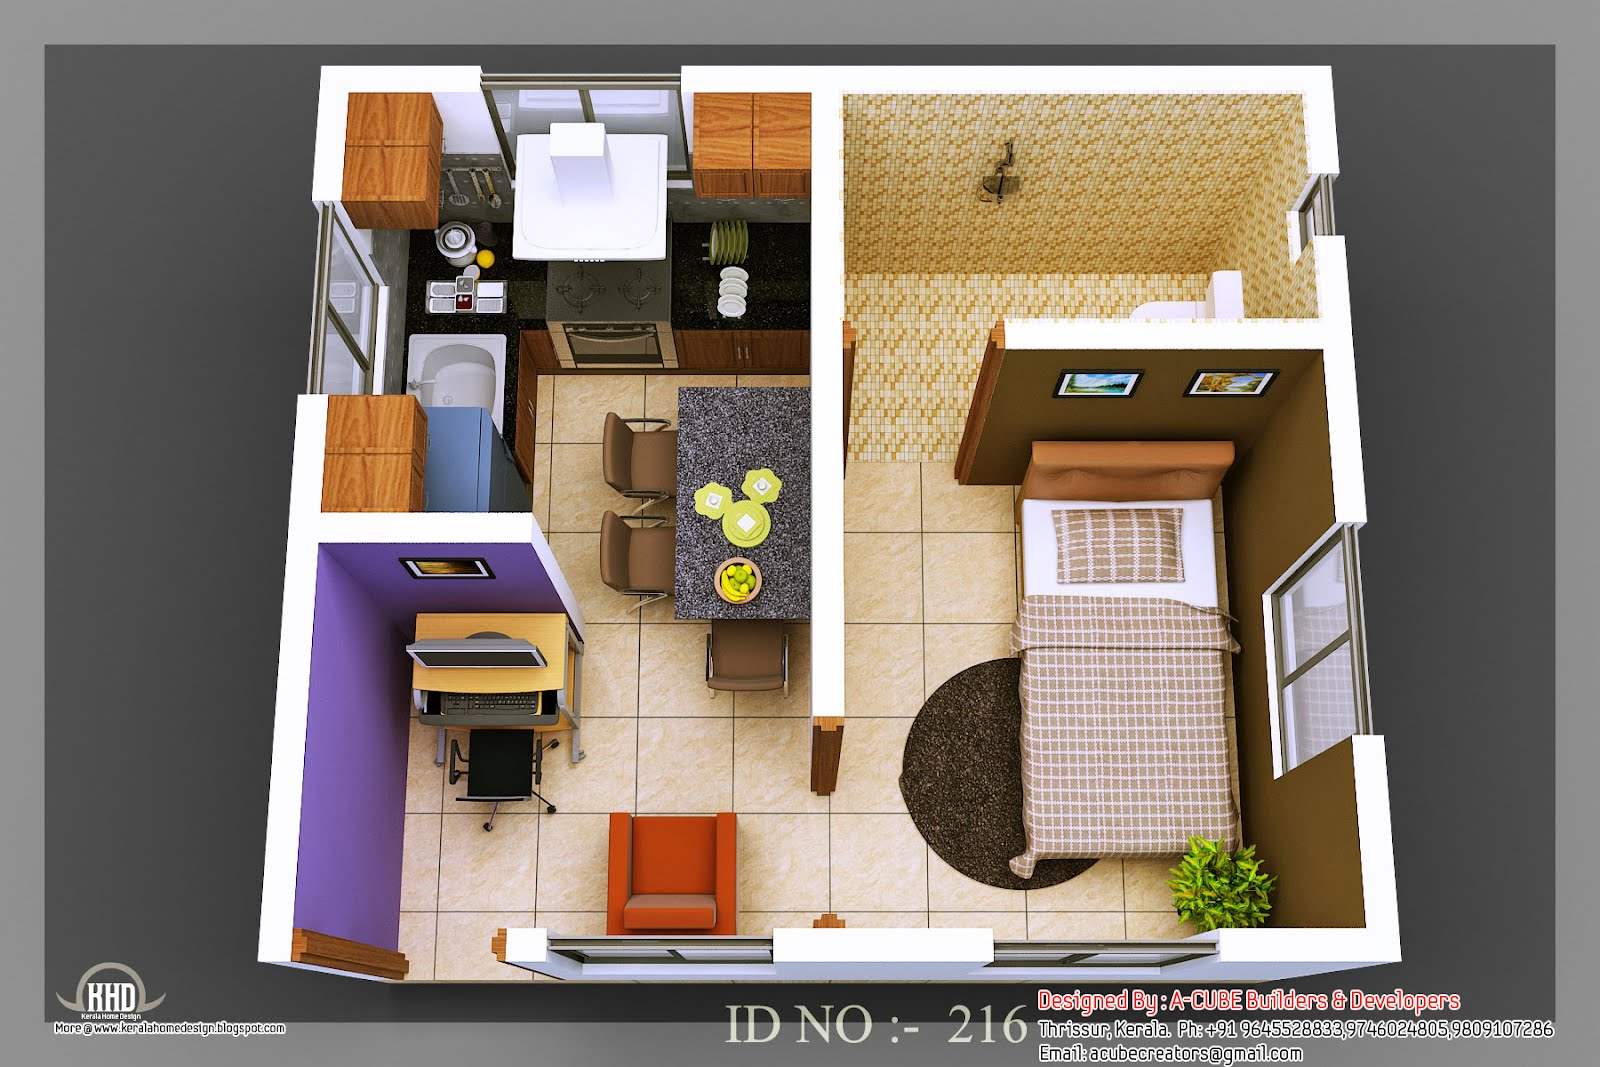 3d isometric views of small house plans home appliance